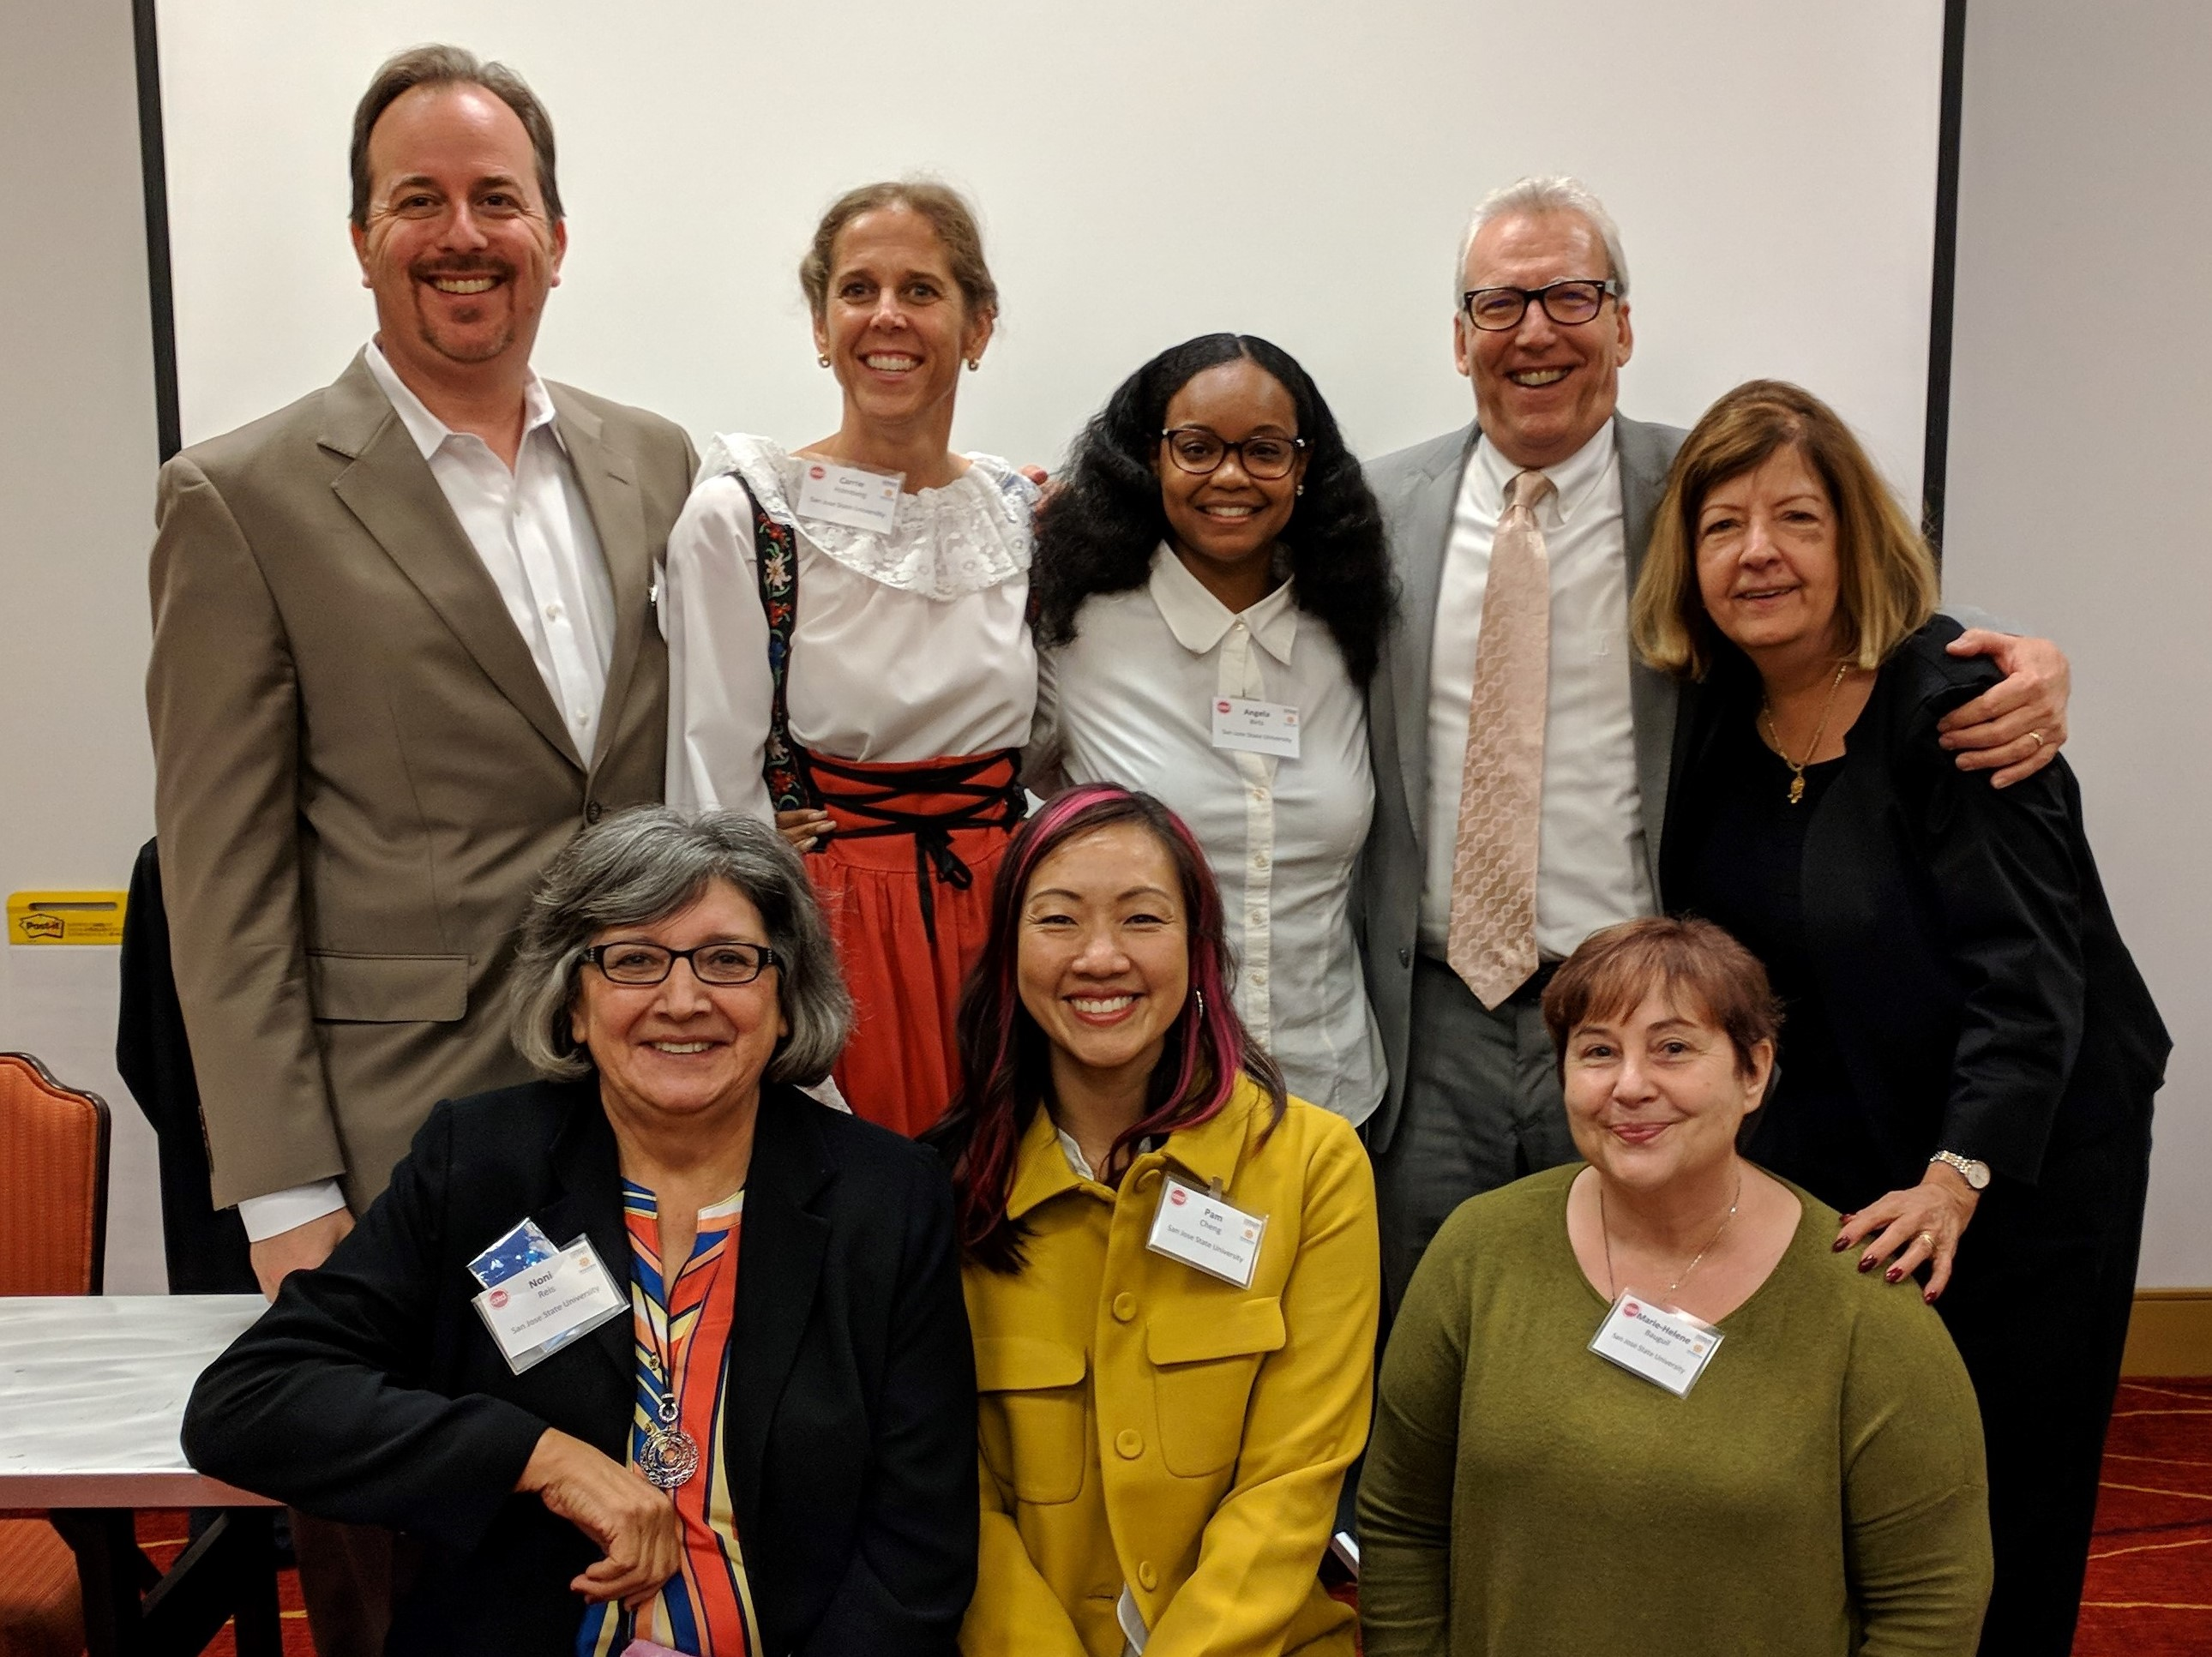 Ed.D. Graduates after presenting their dissertation topics at the Carnegie Endowment for the Educational Doctorate (CPED) Convening in October 2017